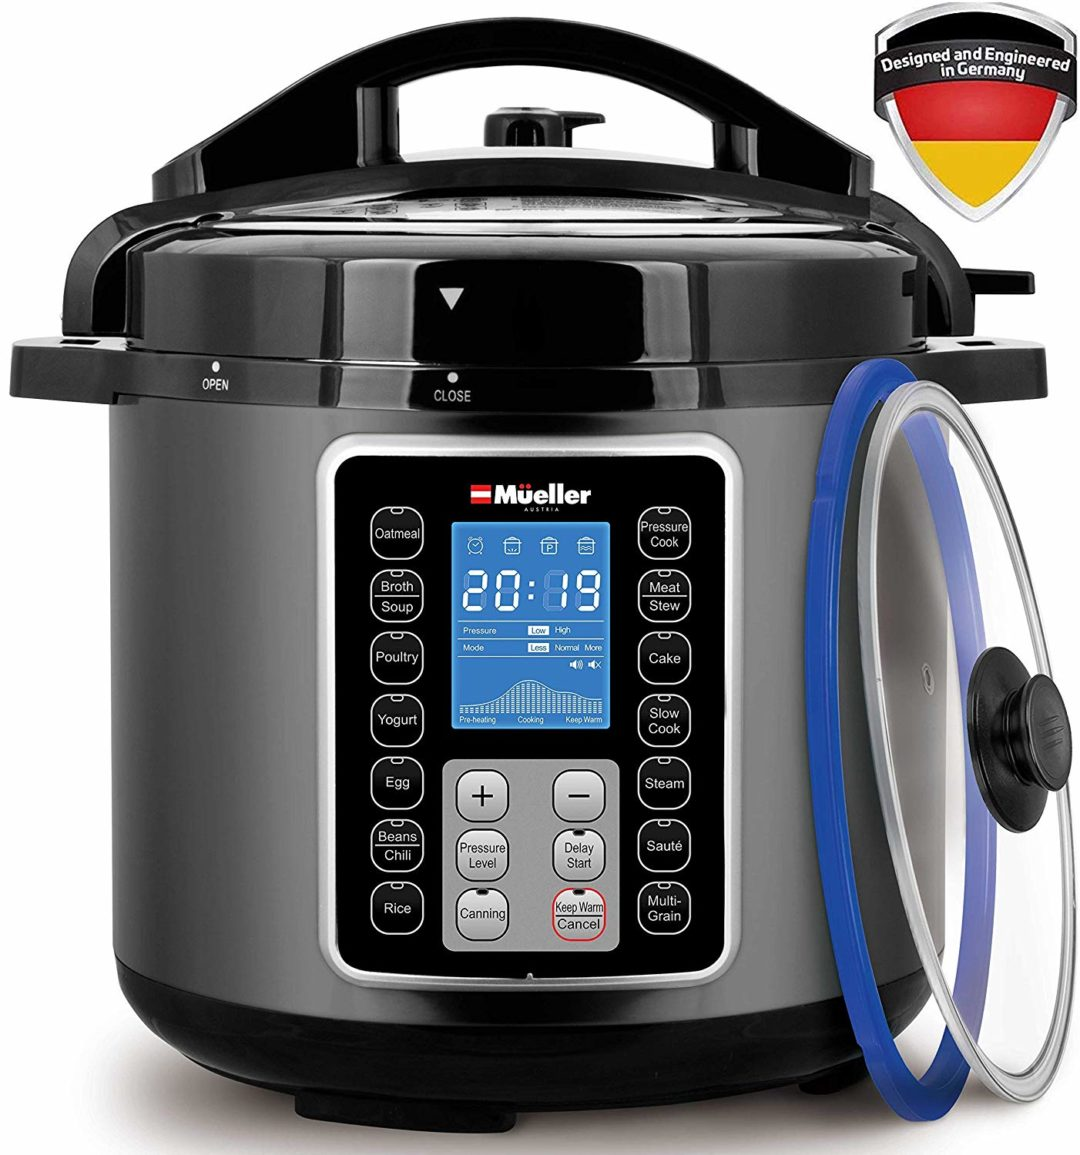 Mueller 10-in-1 Pro Series Multi Cooker Review